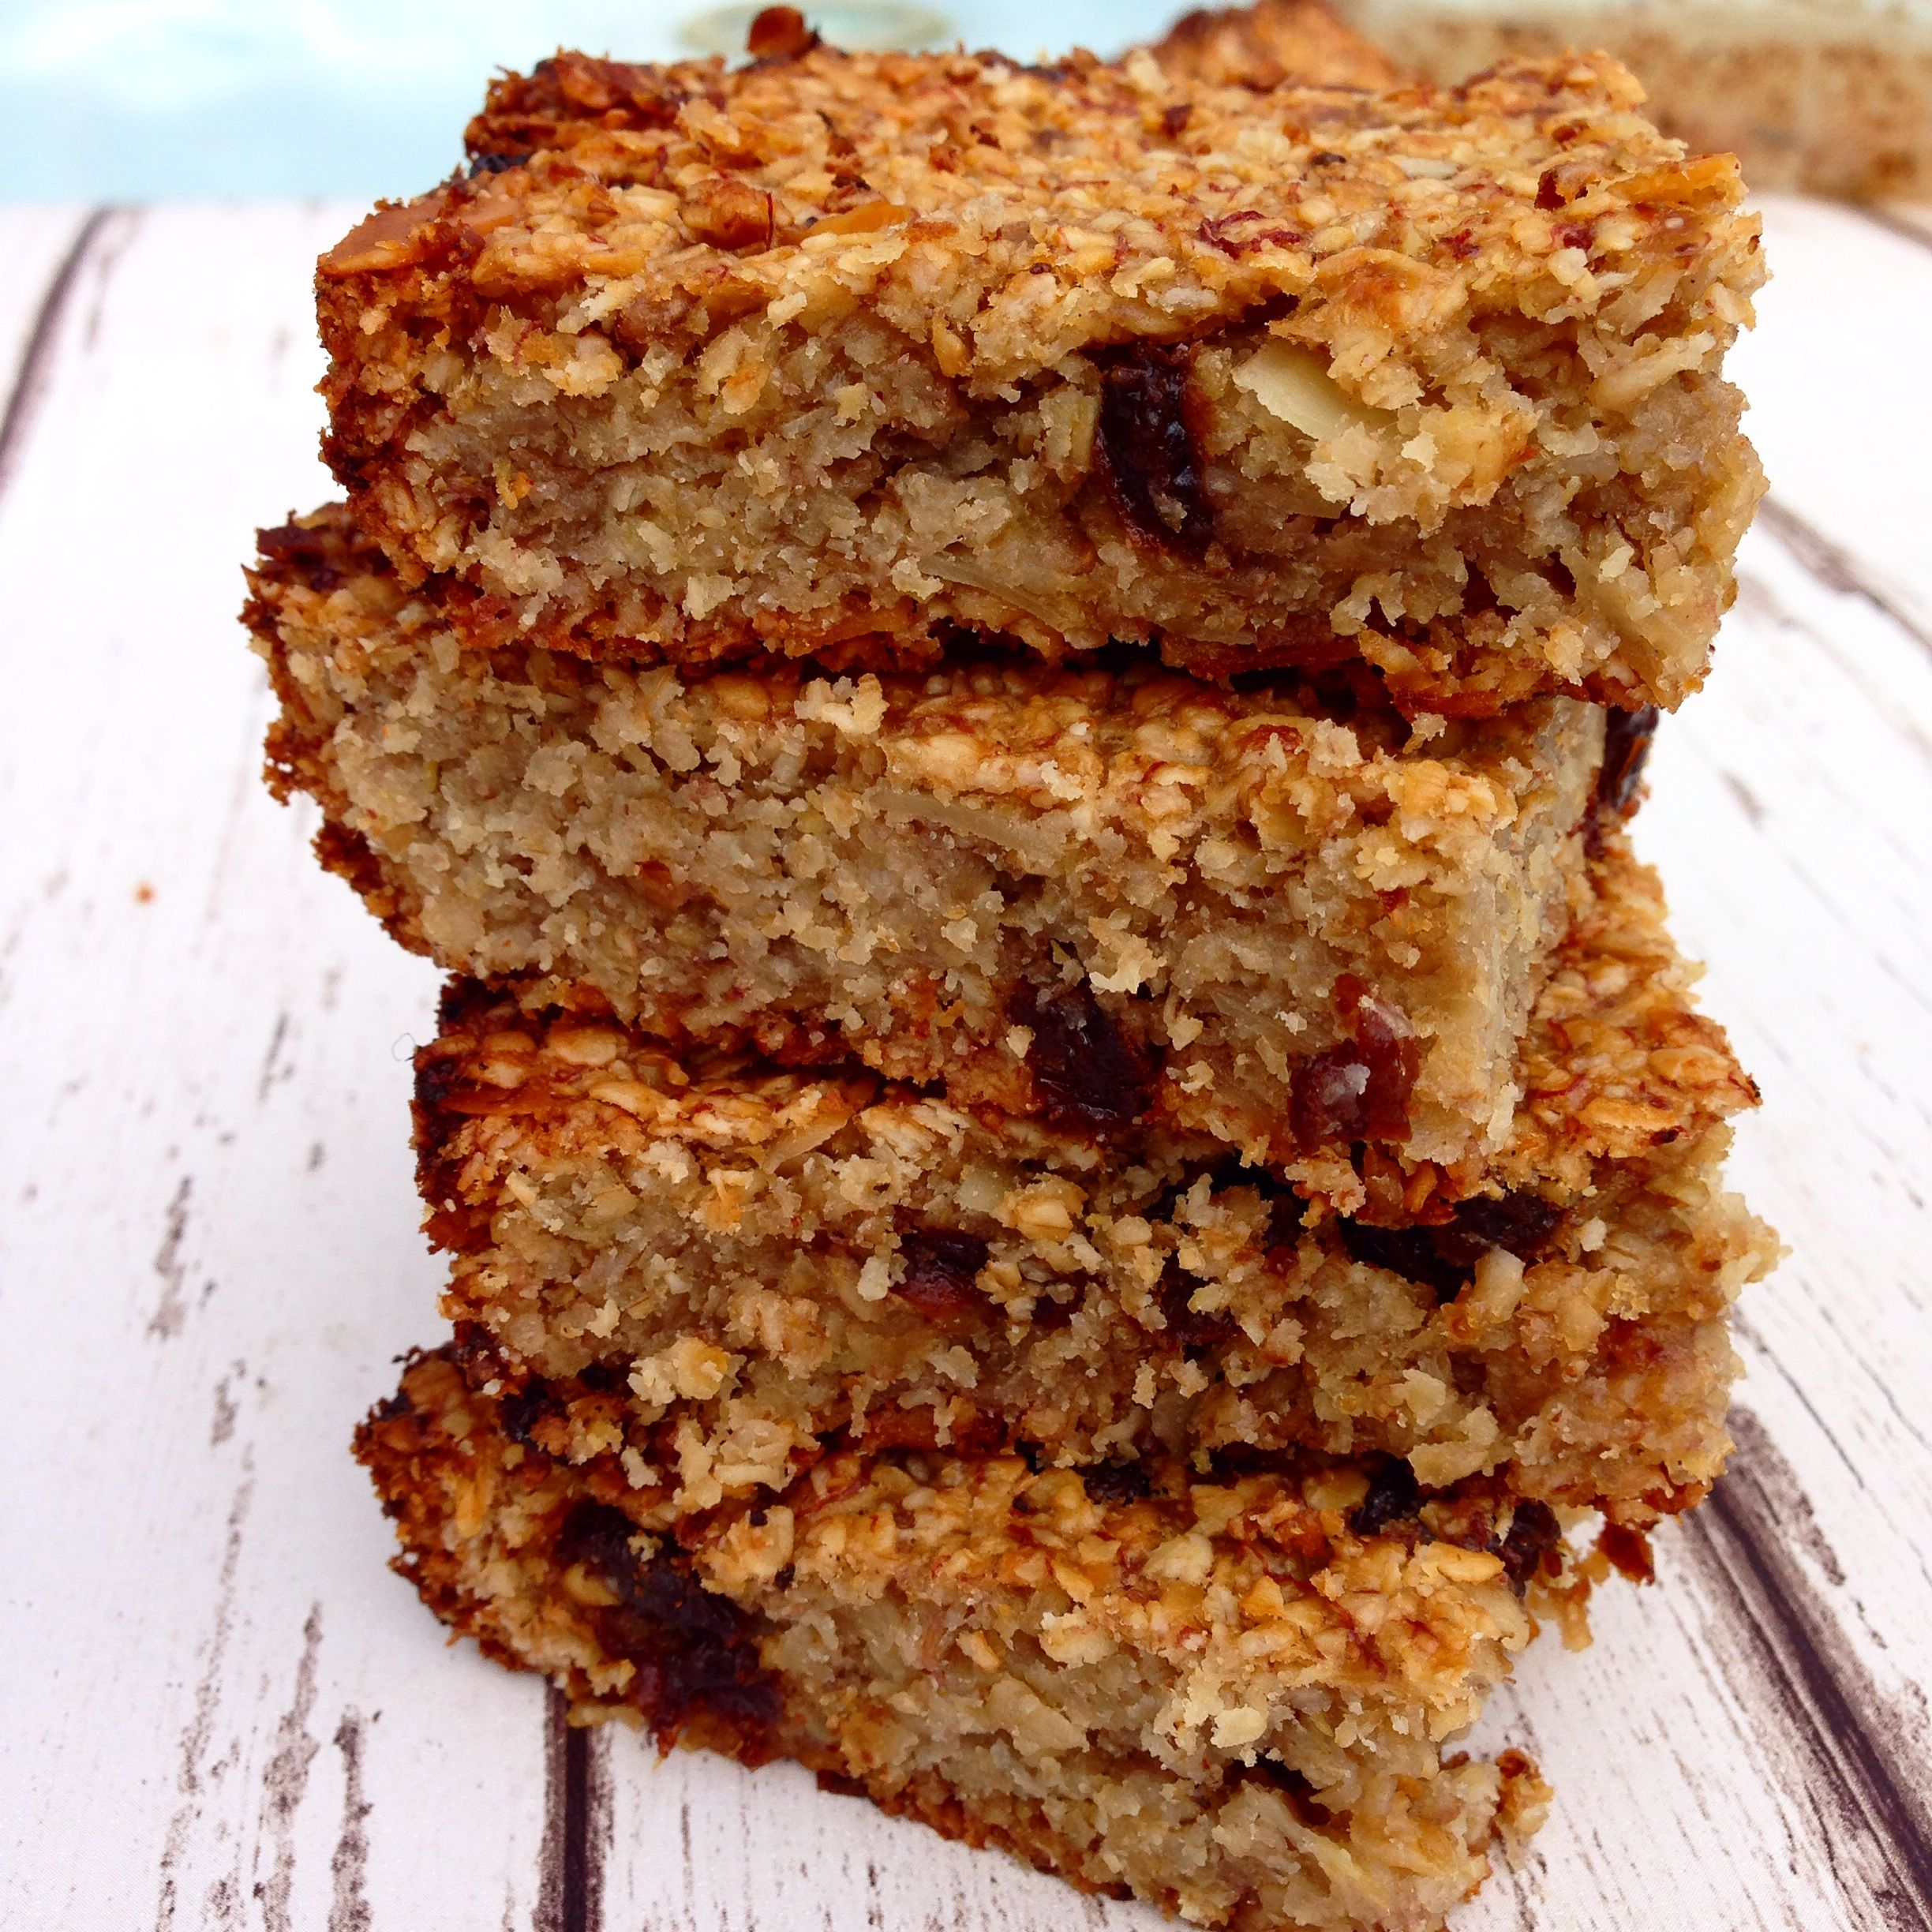 Simple And Clean Flapjack Recipe Flapjack Recipe Food Recipes